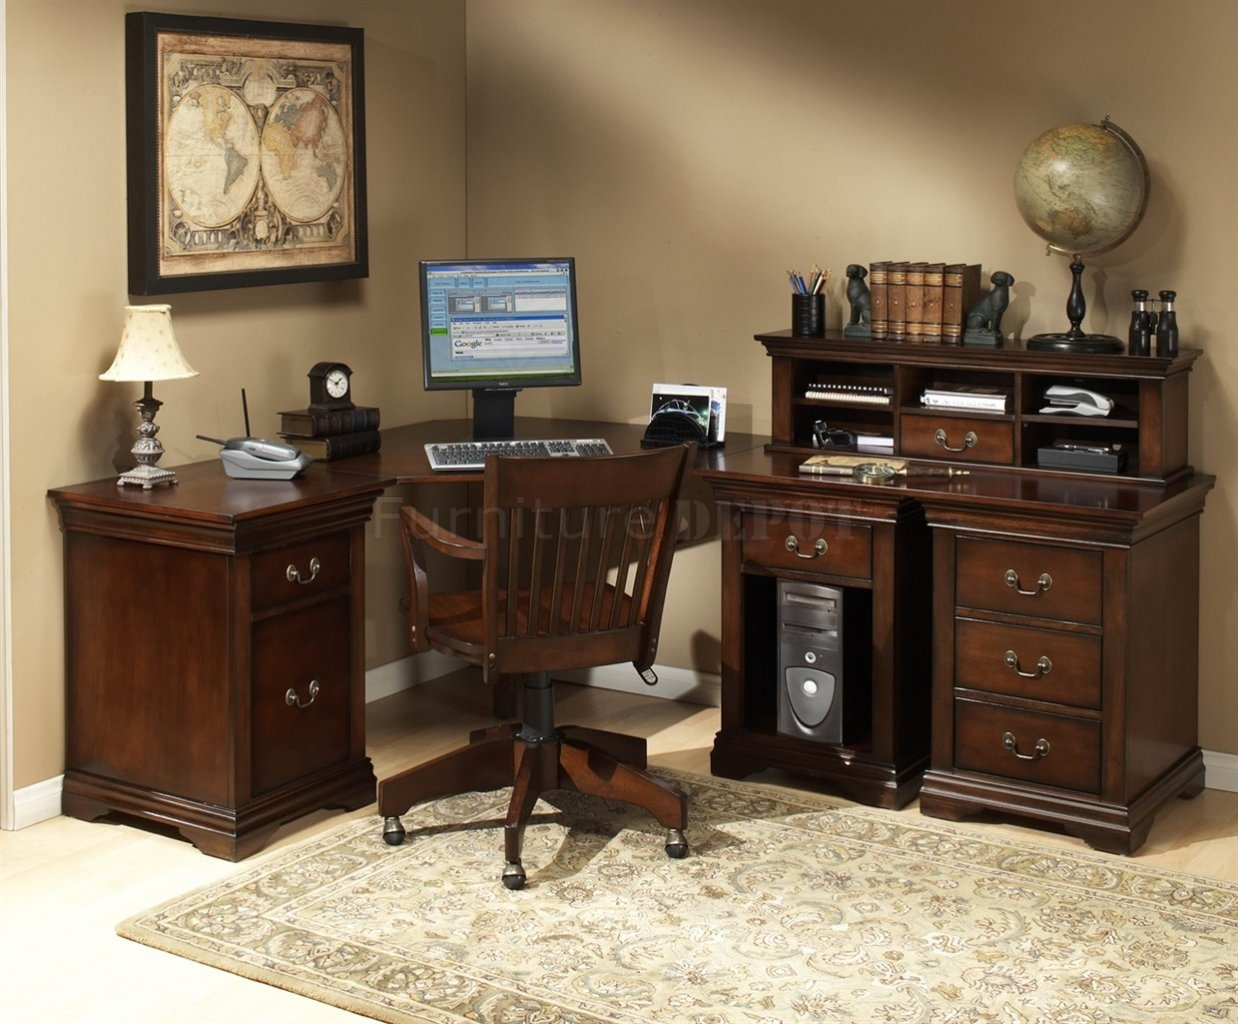 Burnish Cherry Finish L Shaped Desk With Hutch And Drawer Plus Computer Set  And Wooden Armchair